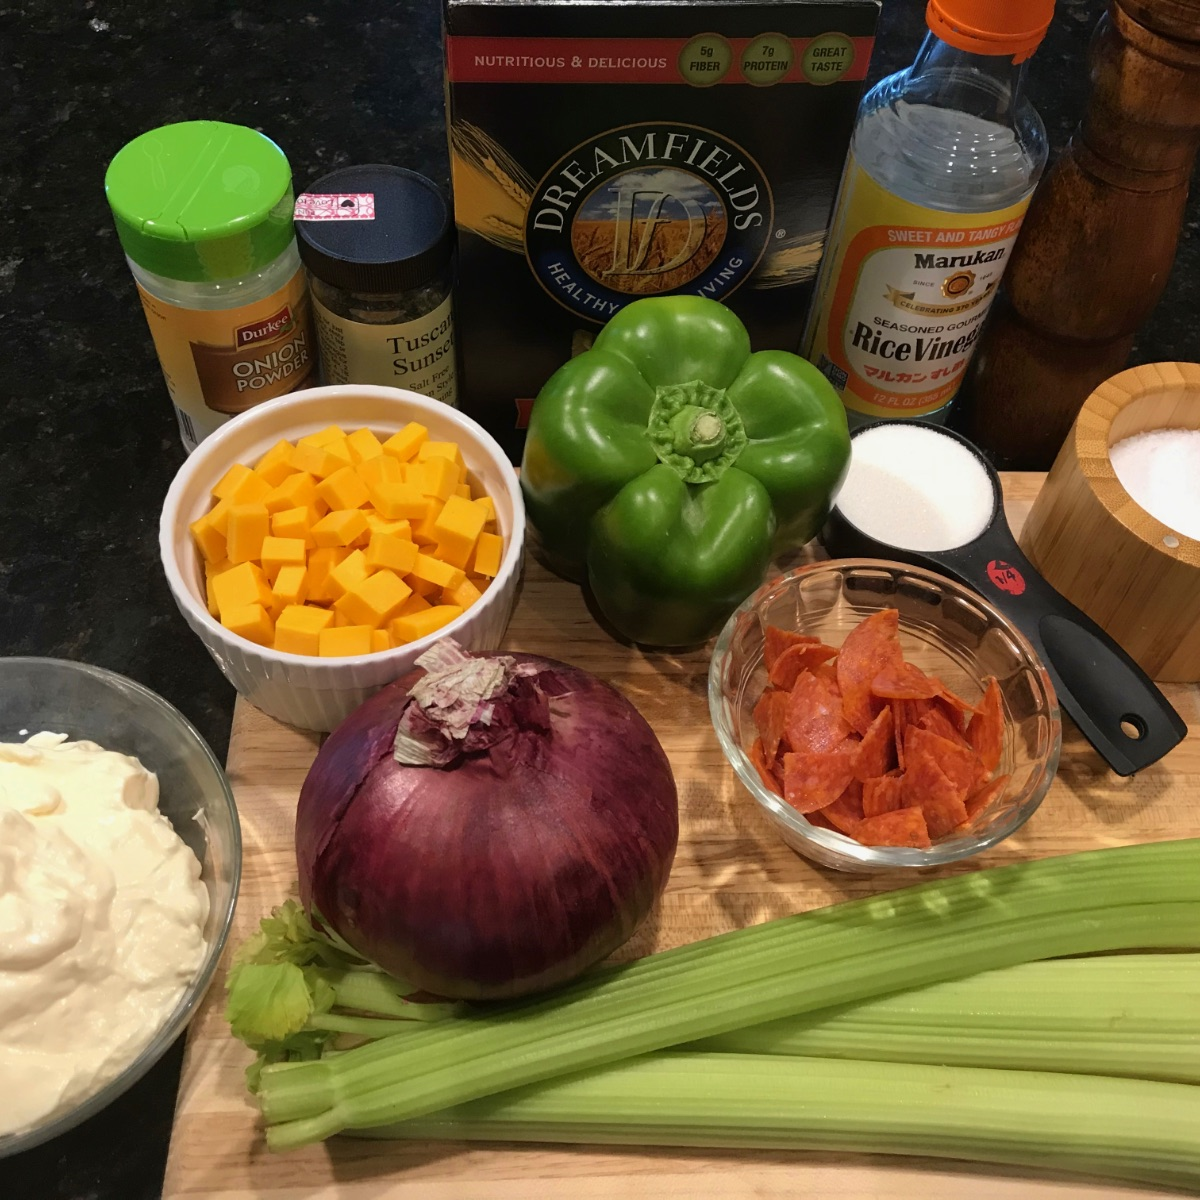 image of Ingredients for this pasta salad (clockwise from top left): onion powder, Italian herb mix, pasta, rice vinegar, salt, sugar, pepperoni, green bell pepper, red onion, cubed cheddar cheese, and mayonnaise.